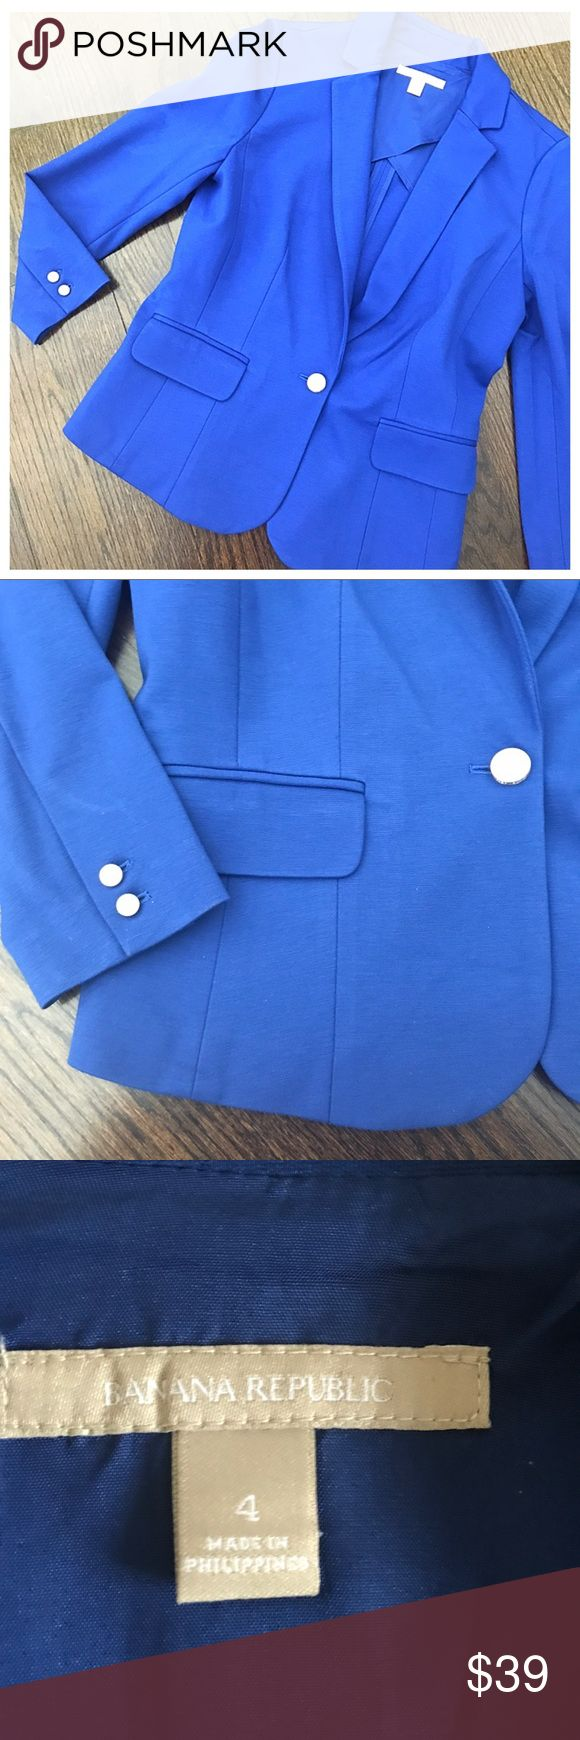 Banana Republic Blue & Silver One Button Blazer Banana Republic blue one button blazer. Worn once, like new condition. Silver buttons. Size 4, fits like a 2/4. Banana Republic Jackets & Coats Blazers